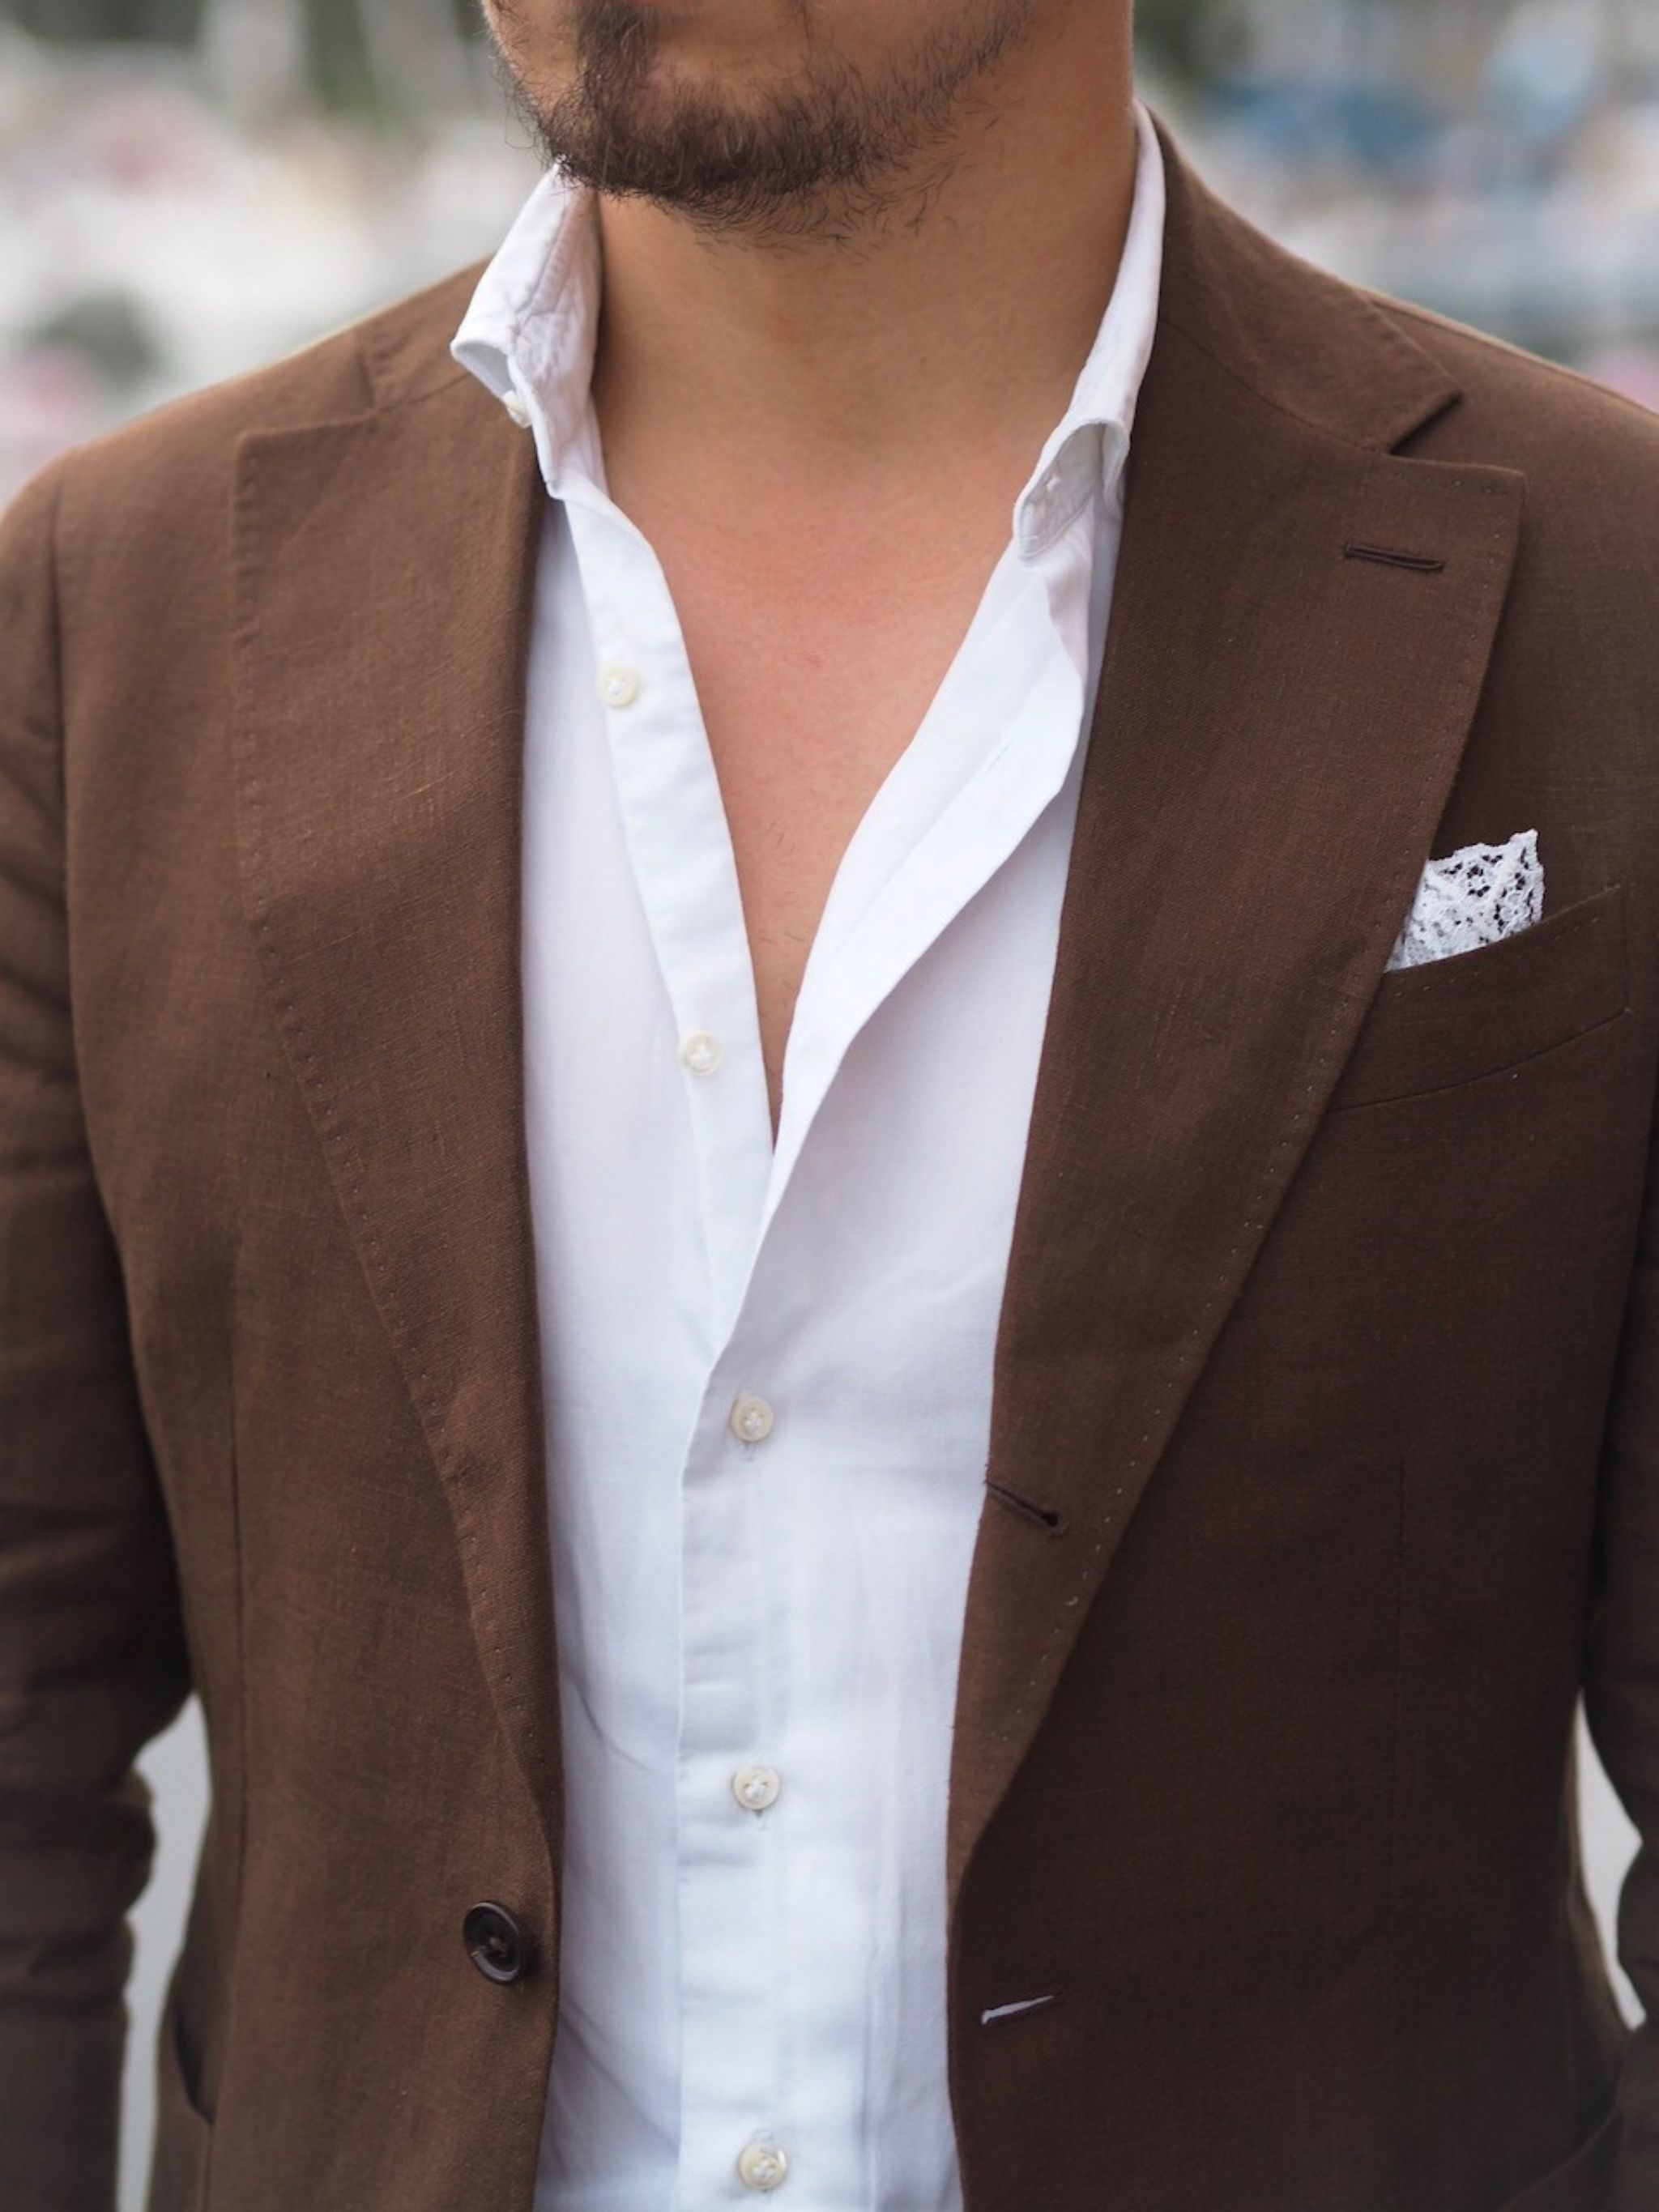 Brown linen suit jacket with white DLA oxford shirt detail